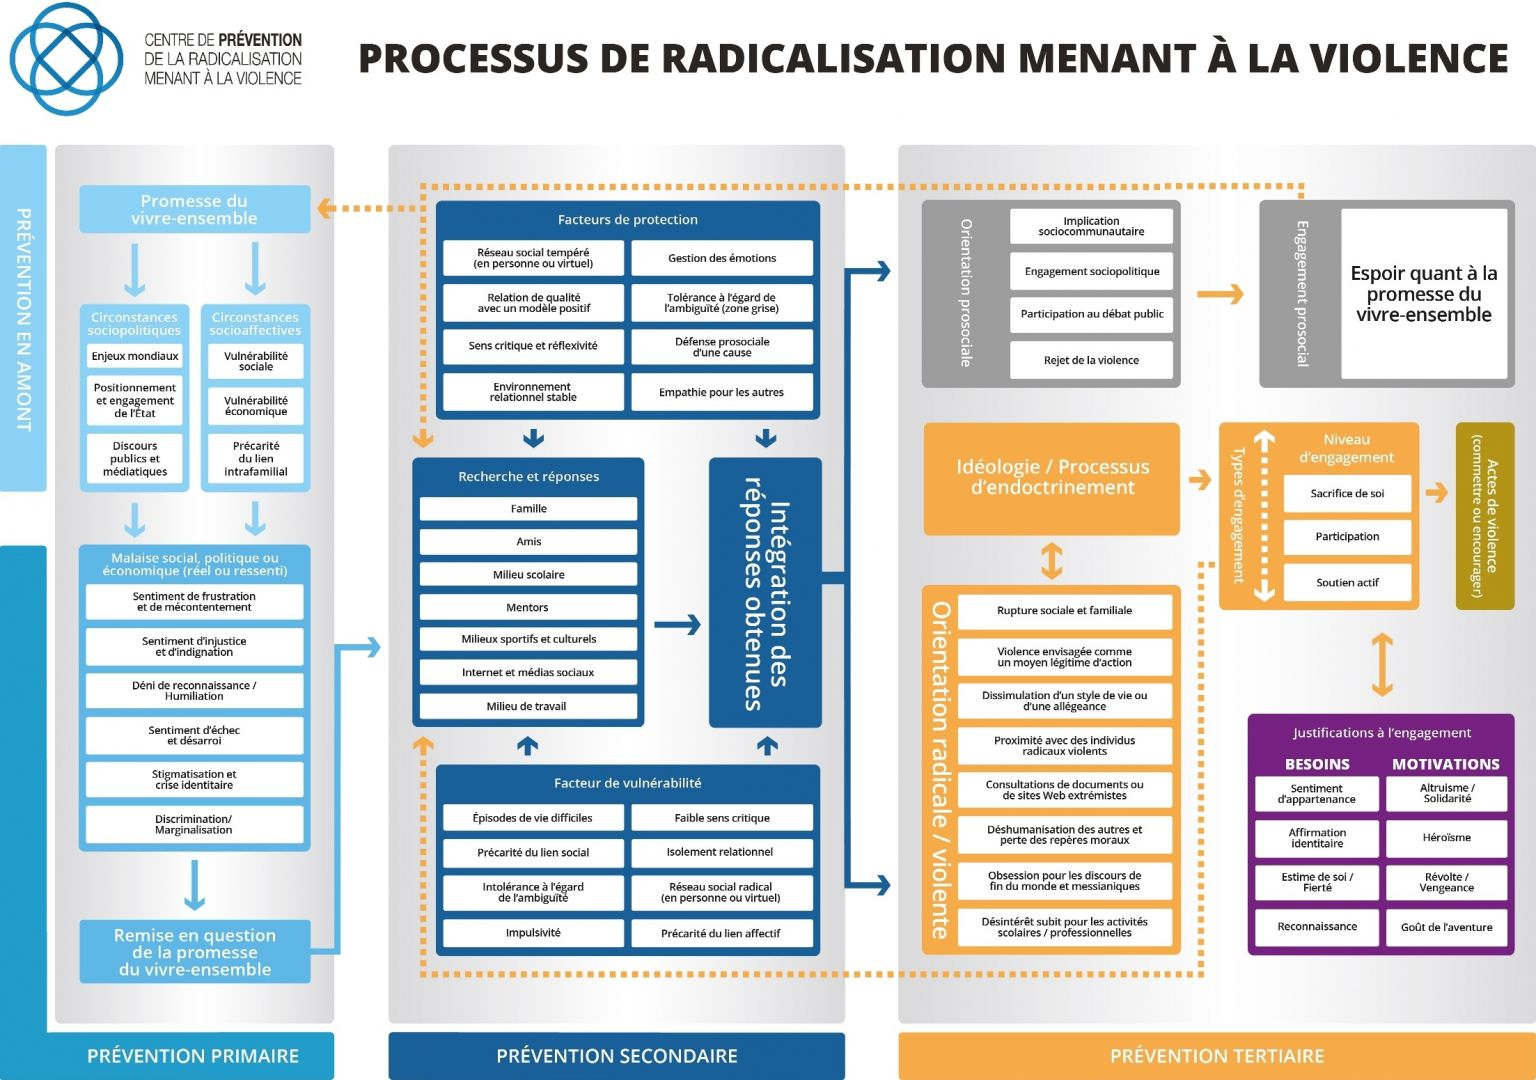 the radicalisation process The radicalization process can take several years for some persons, but develop very quickly for others grievance discontent seems to serve as the prerequisite of the radicalization process.